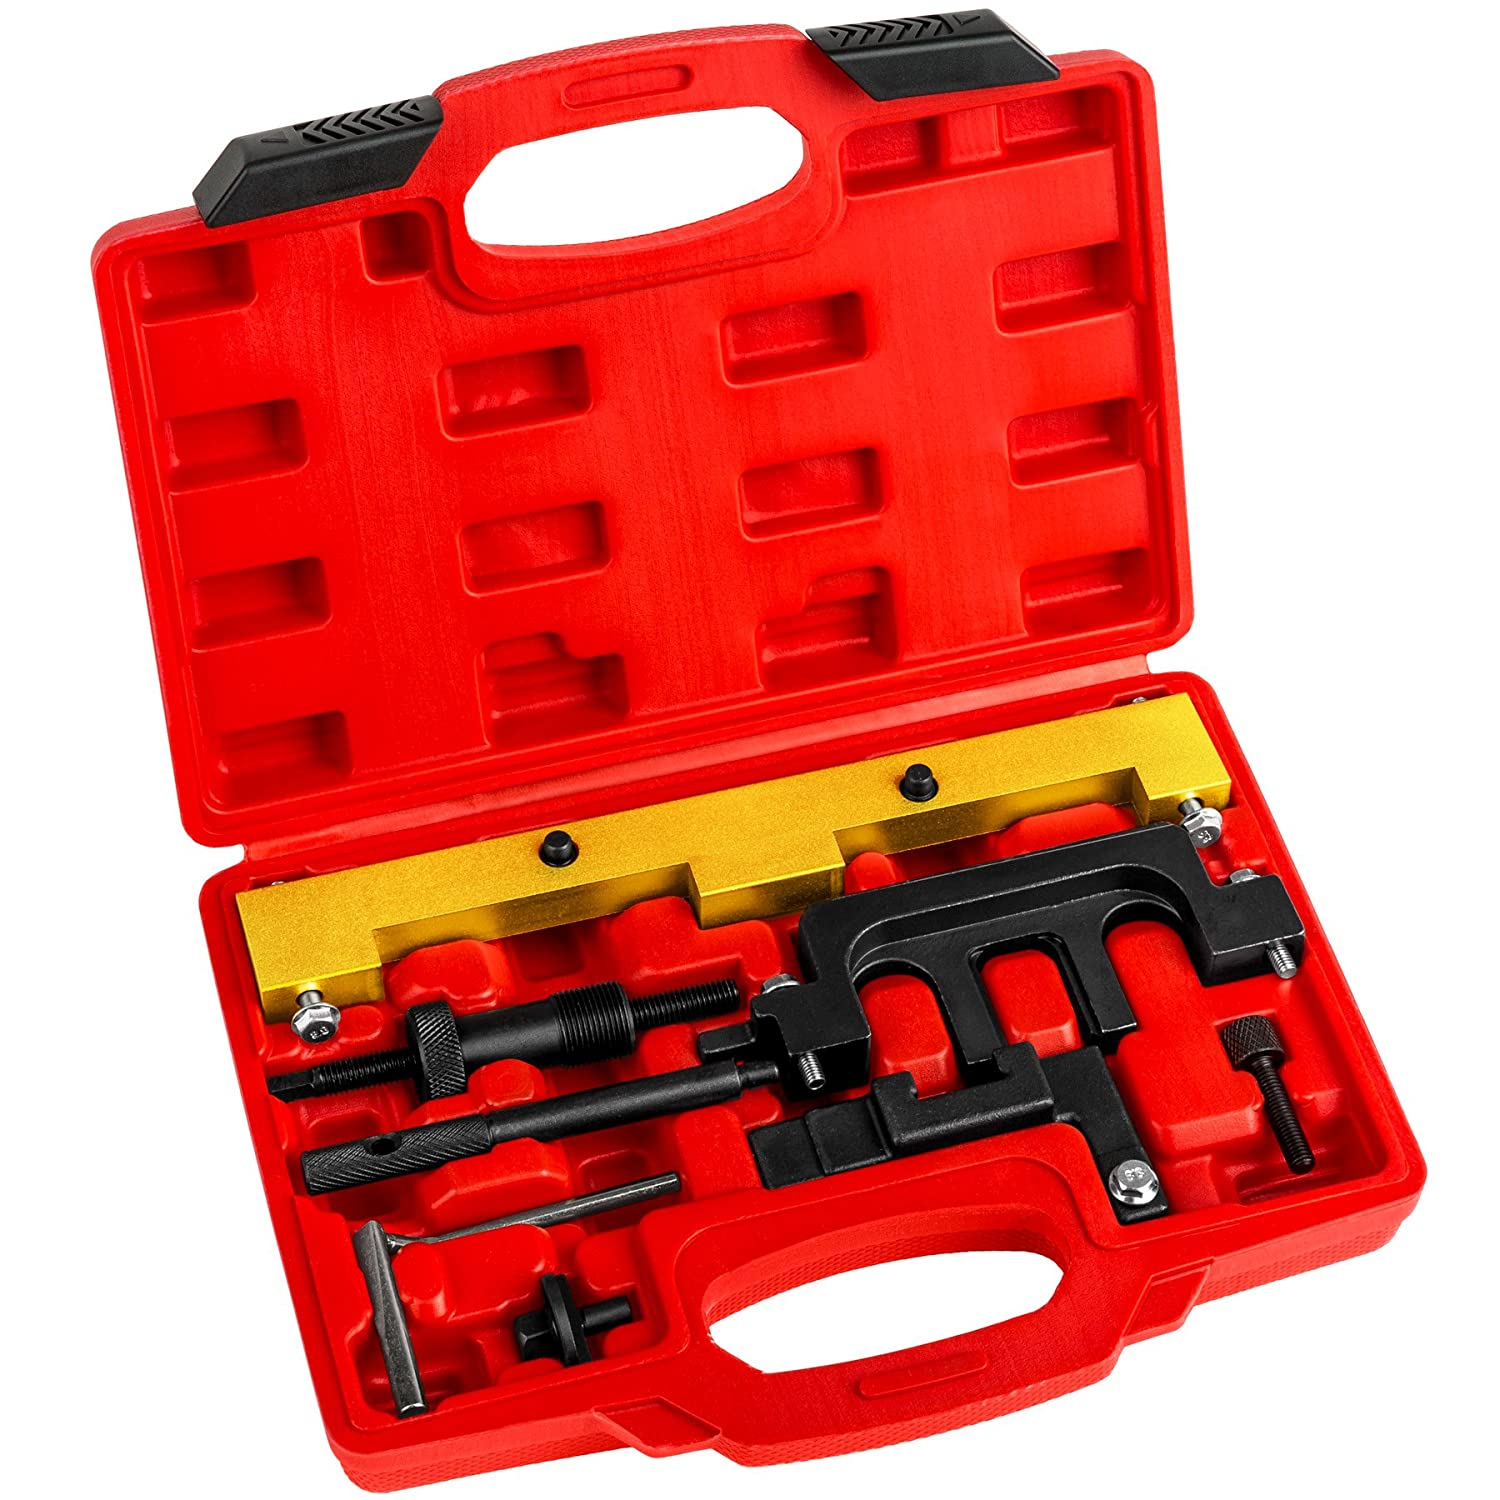 Retrome Suspension Rear Bush Removal//Installation Tool Kit Set In-situ VW//Audi for Installation and Removal